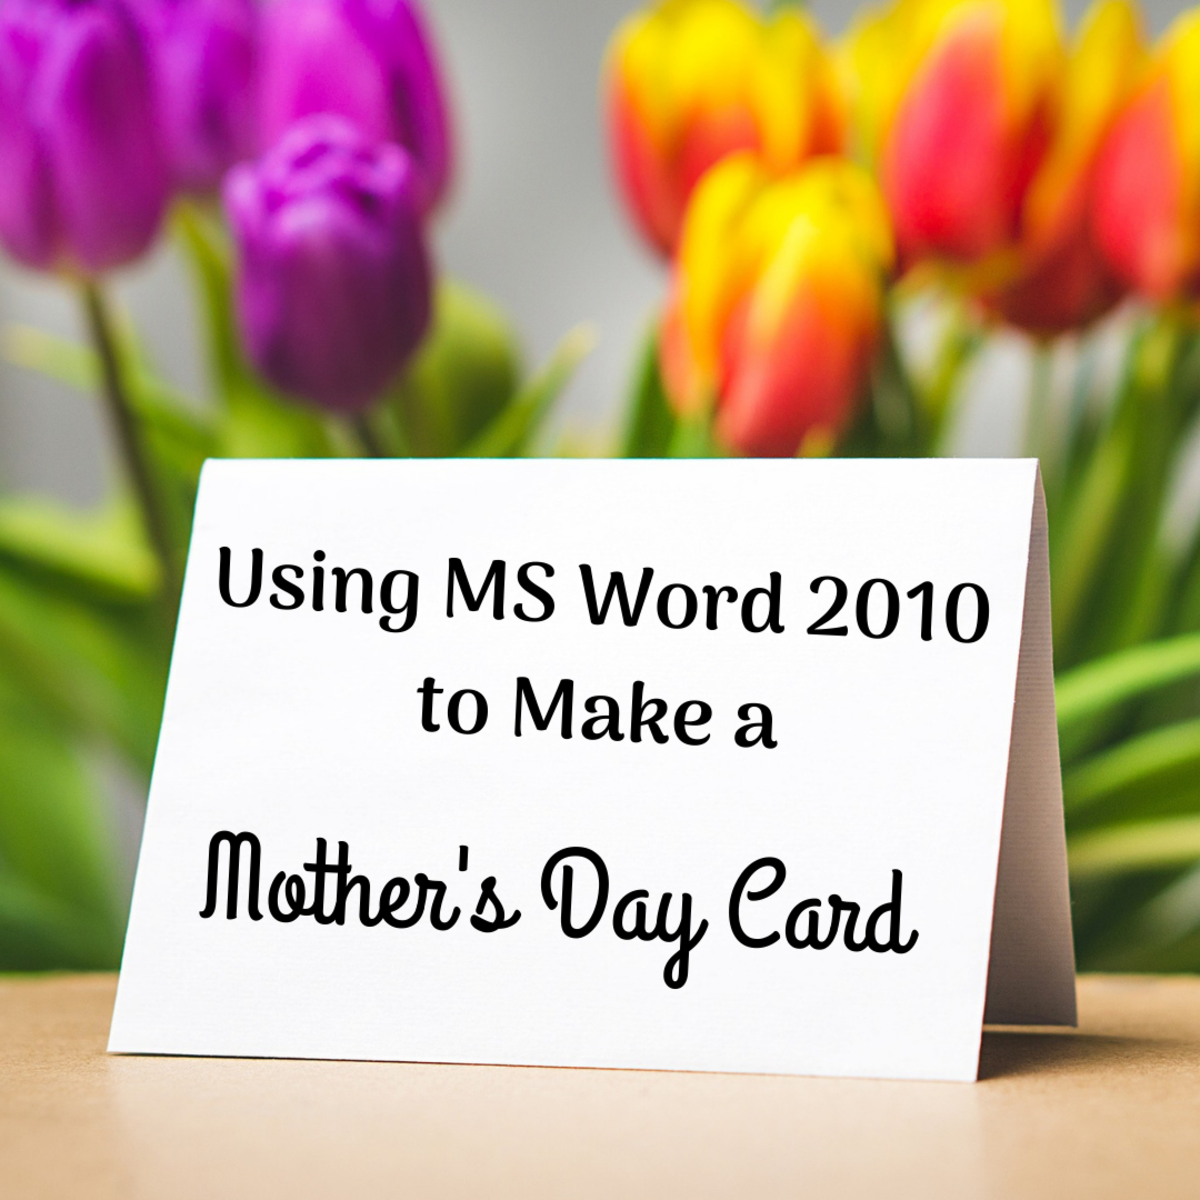 Get instructions for making and printing a Mother's Day card with MS Word 2010.